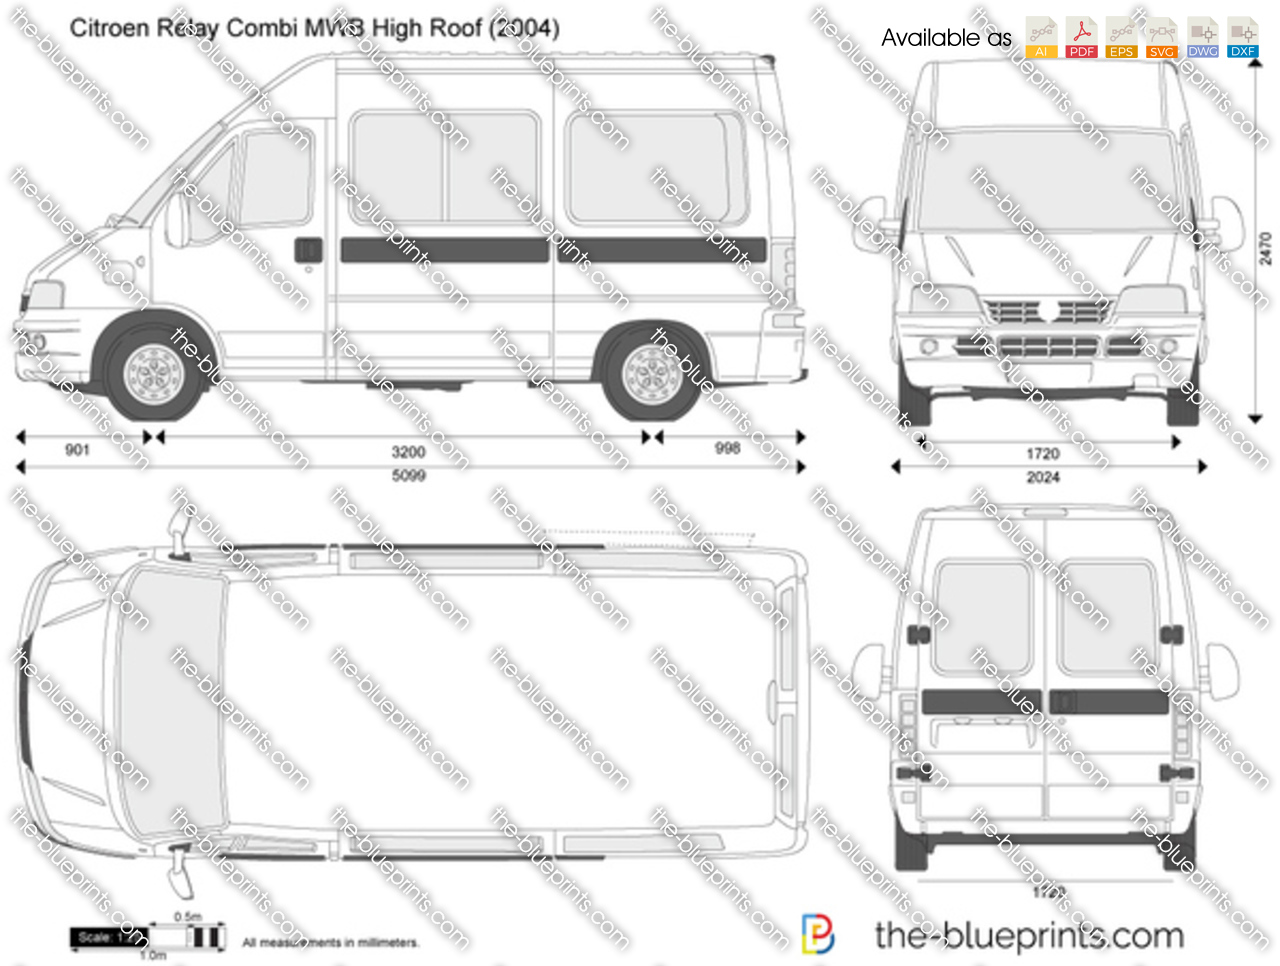 Citroen Relay Combi Mwb High Roof Vector Drawing